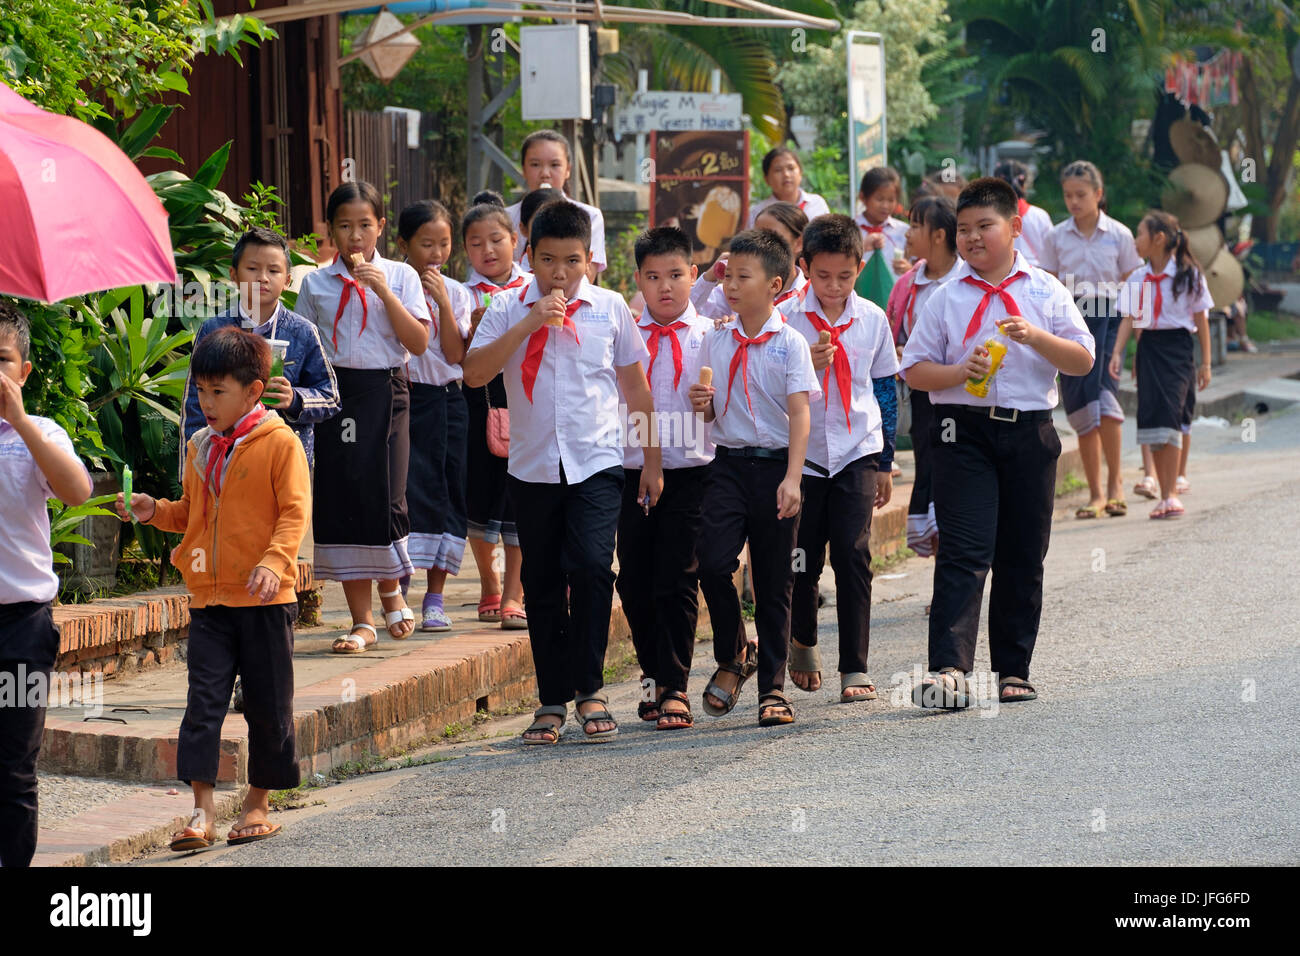 Overweight children eating junk food during a school trip in Asia - Stock Image